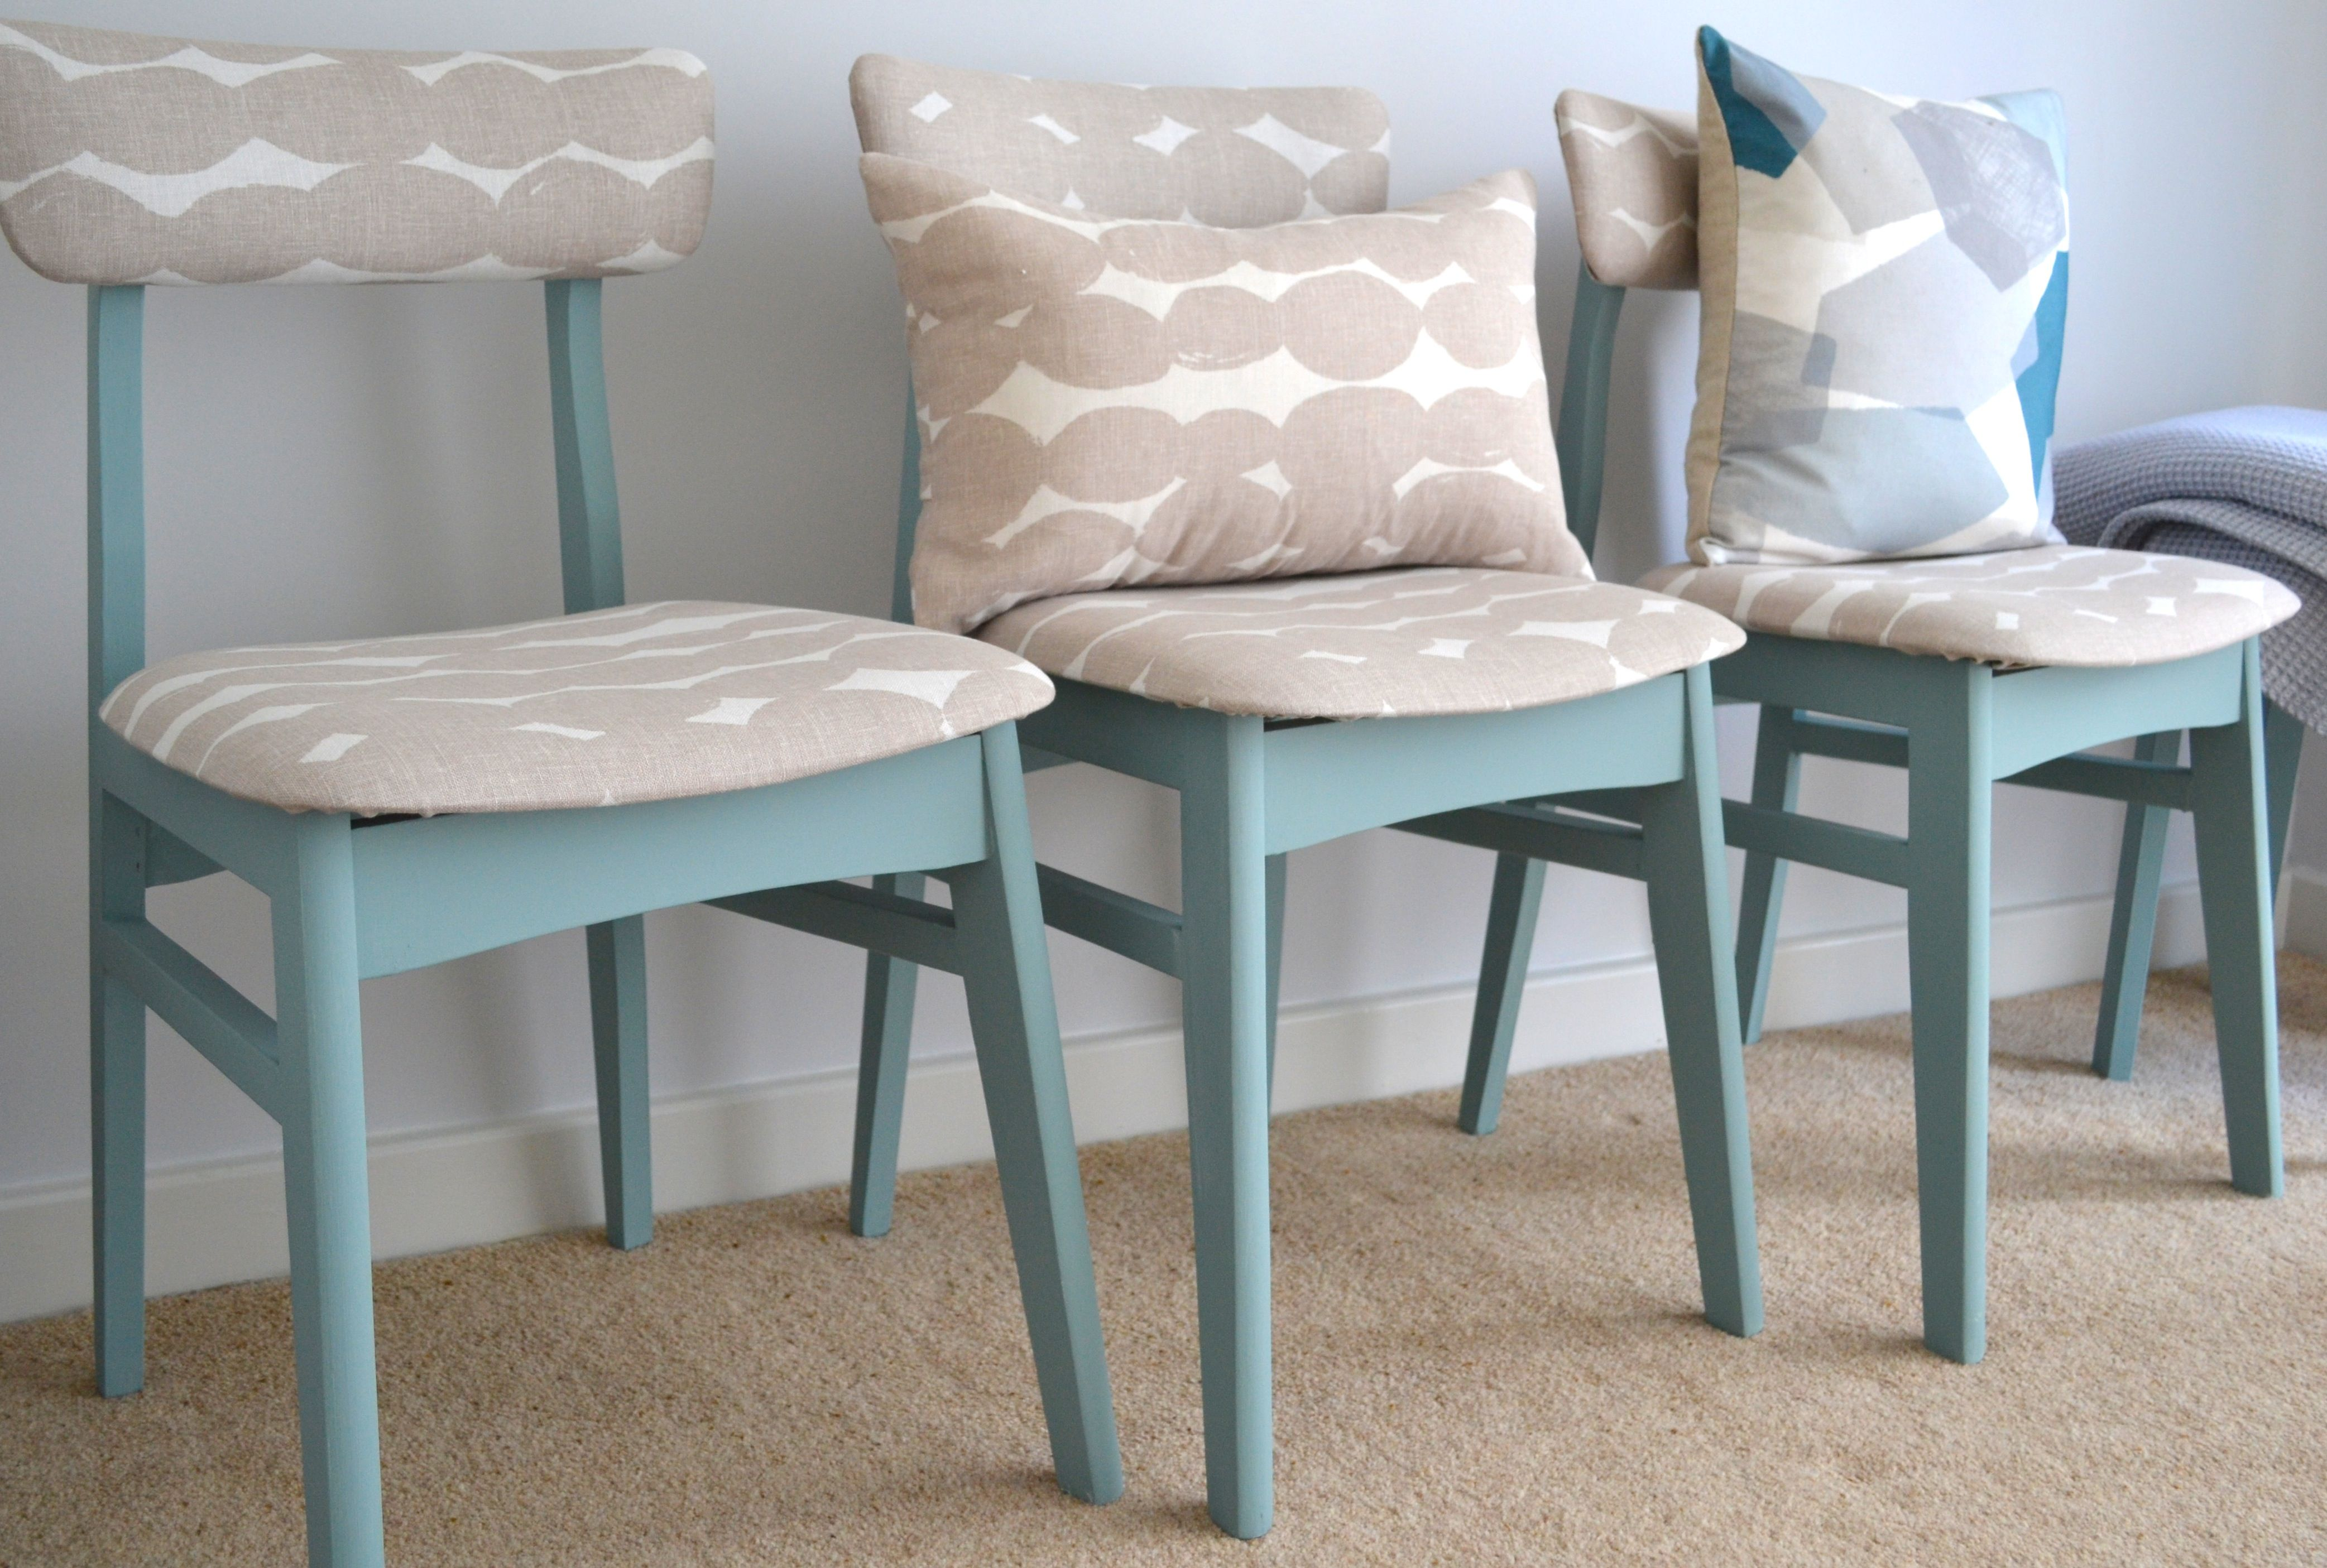 Retro Dining Room Chairs Used Tables And For Sale Mid Century Reupholstery Pebbles